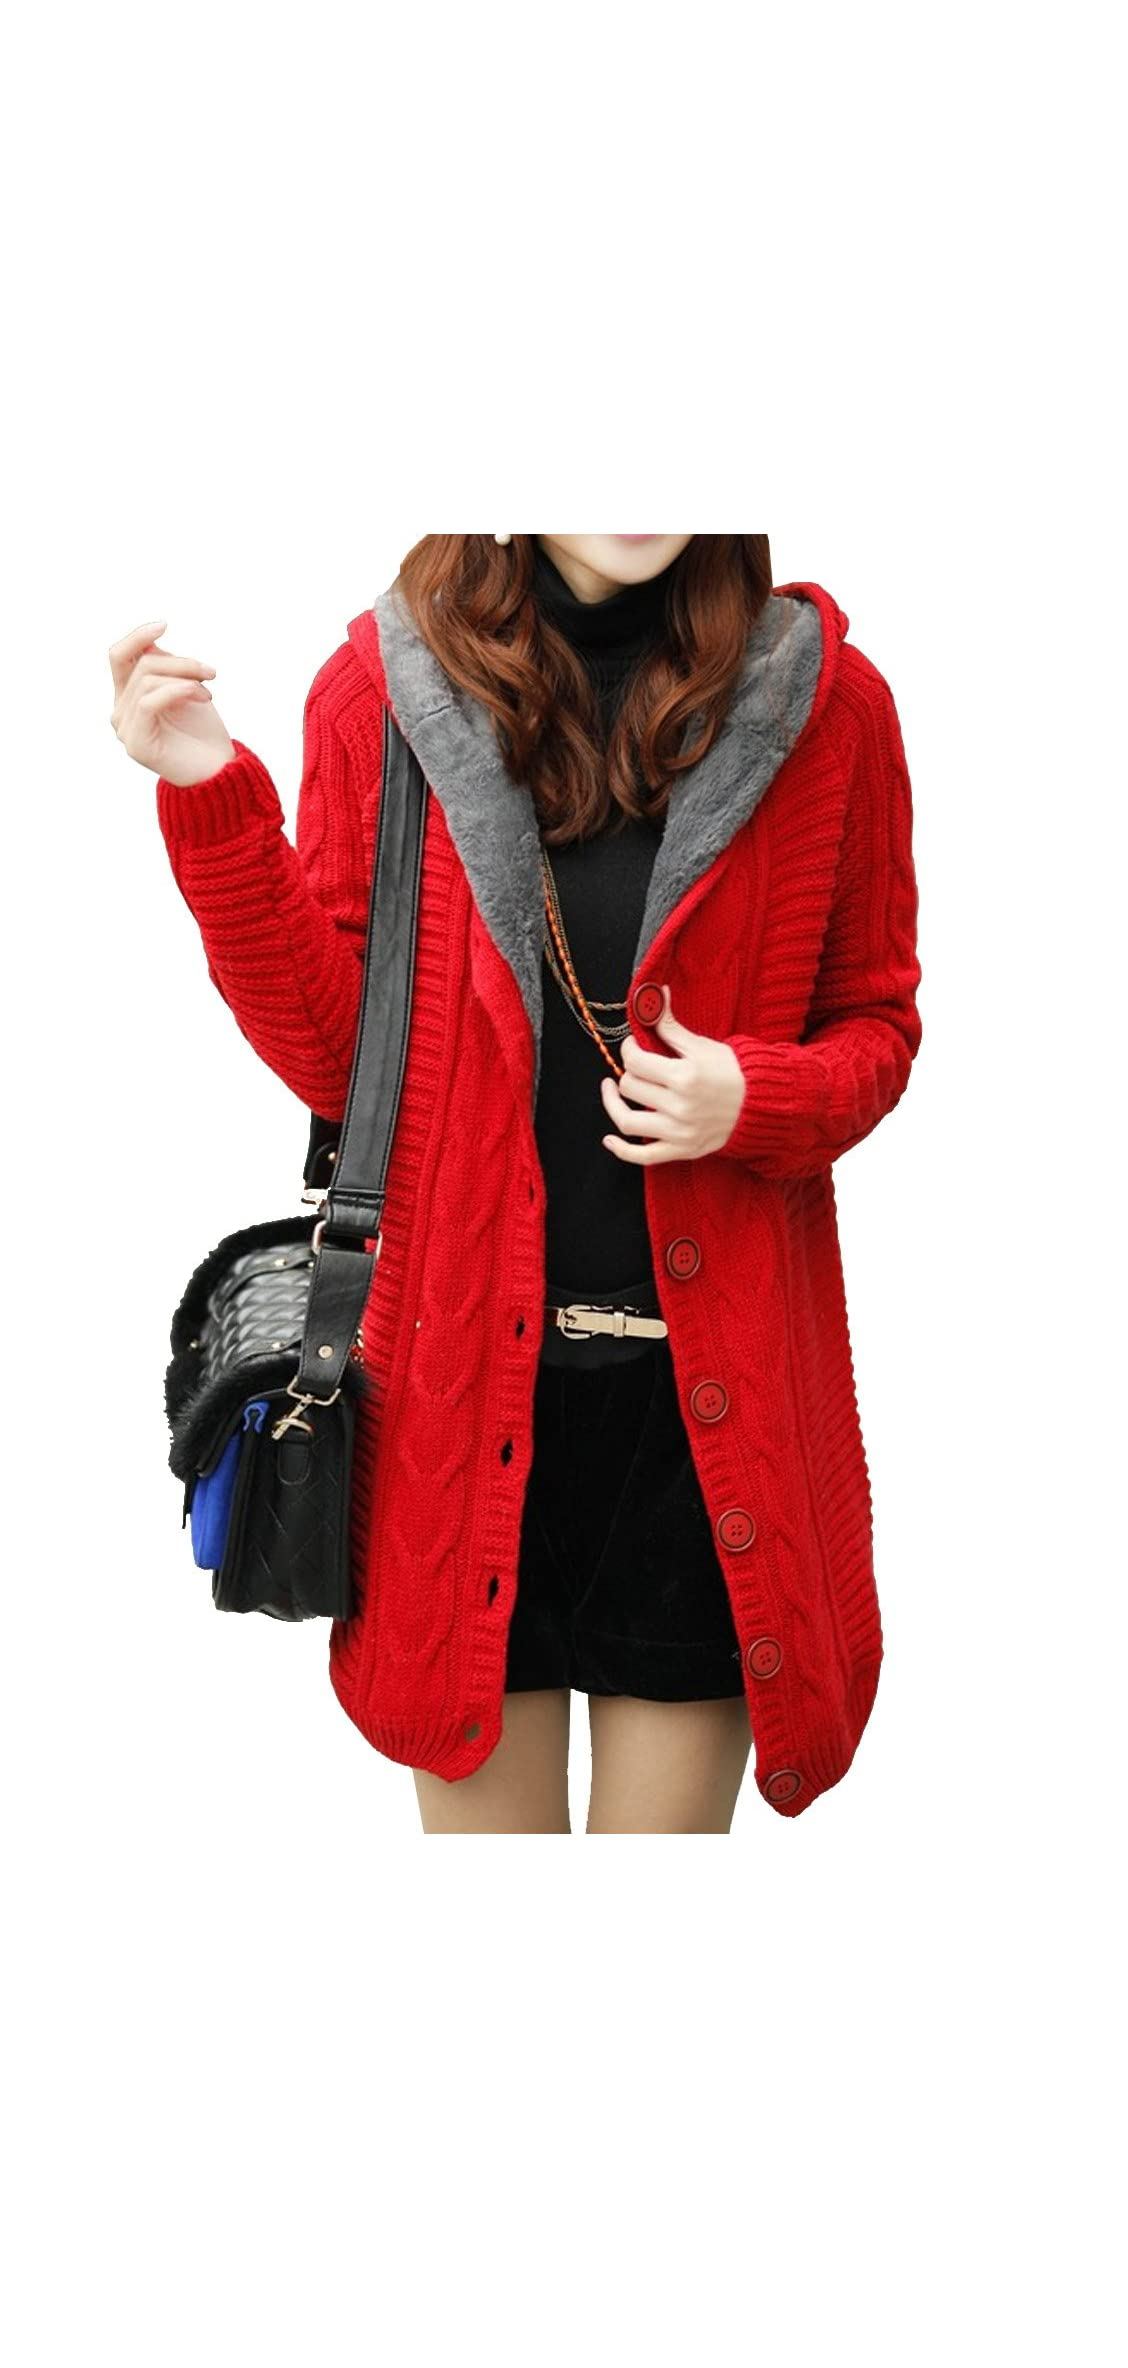 Women's Thick Warm Solid Cable Sweater Faux Fur Lined